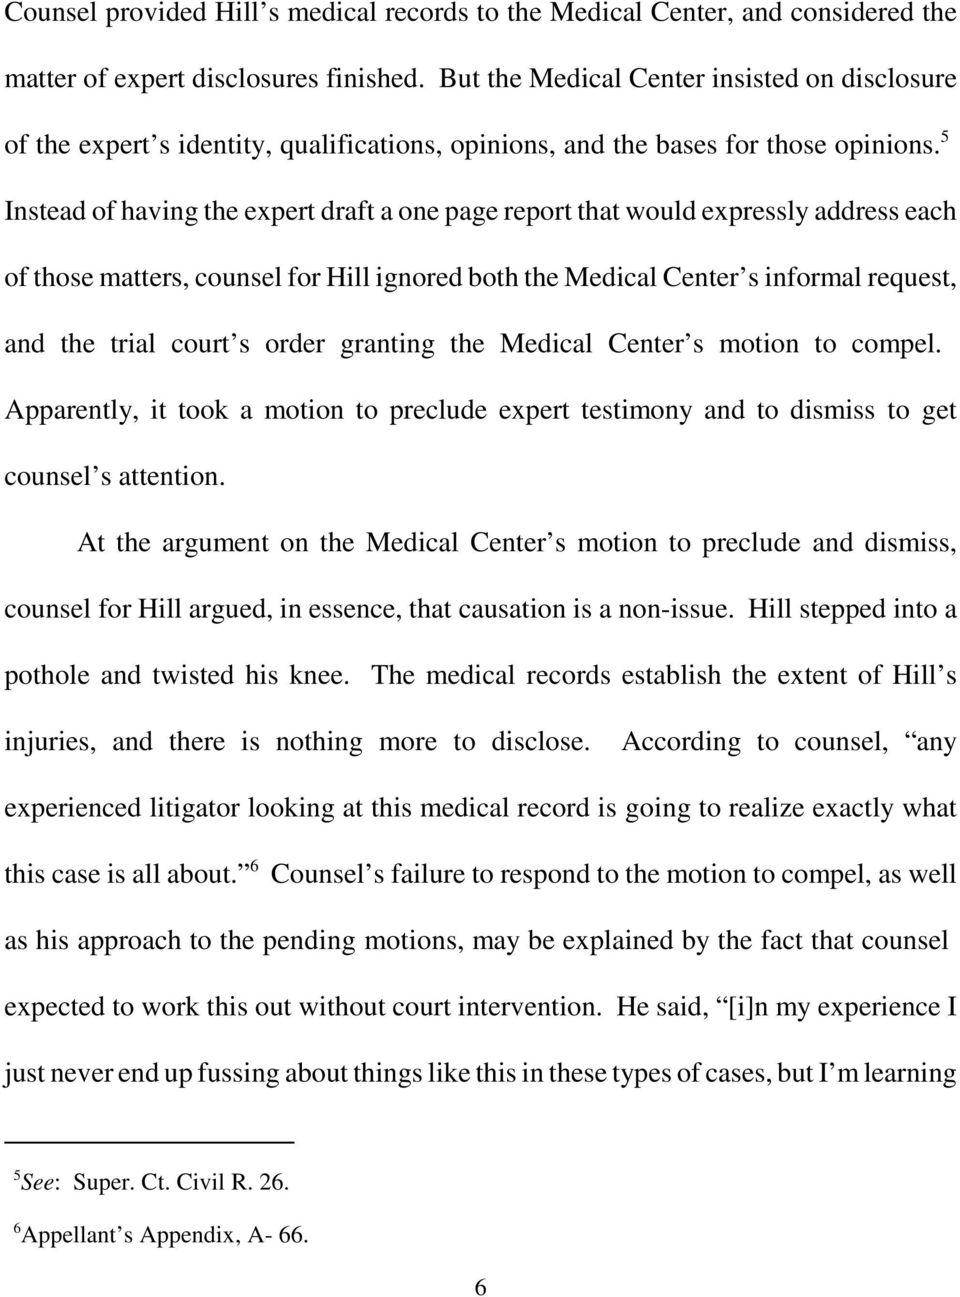 5 Instead of having the expert draft a one page report that would expressly address each of those matters, counsel for Hill ignored both the Medical Center s informal request, and the trial court s